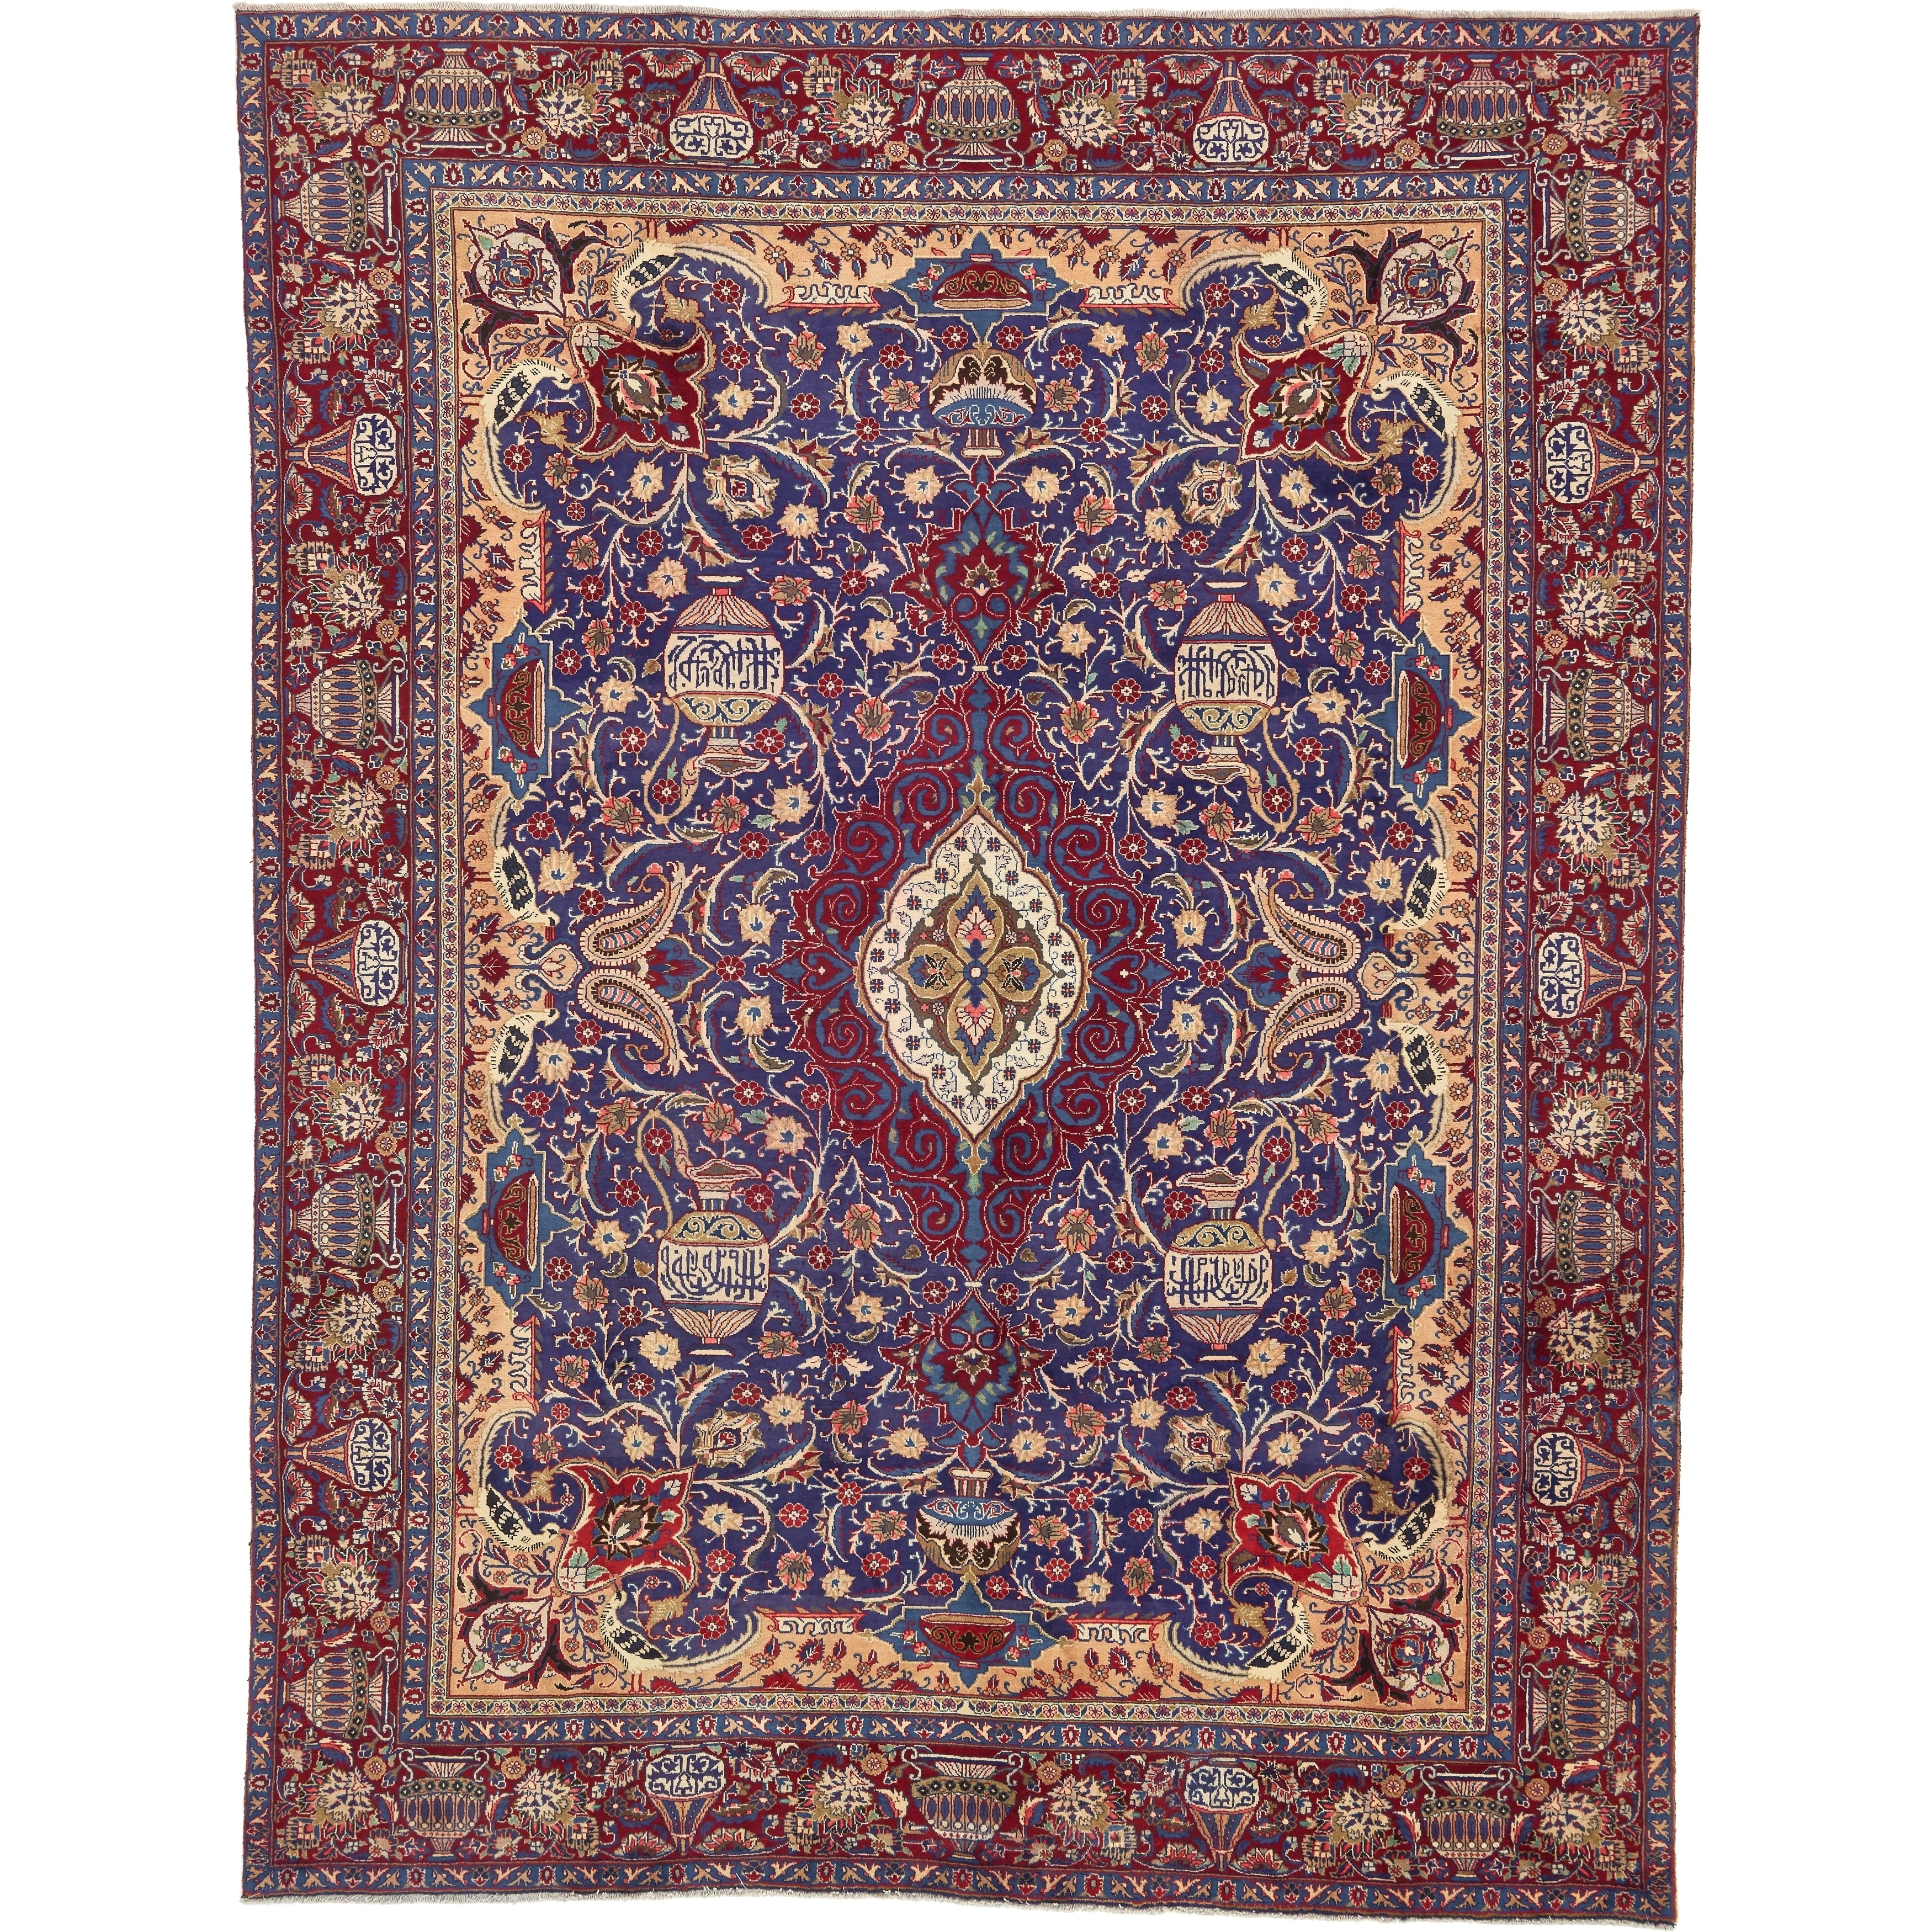 Hand Knotted Kashmar Semi Antique Wool Area Rug - 9 4 x 12 2 (Navy blue - 9 4 x 12 2)